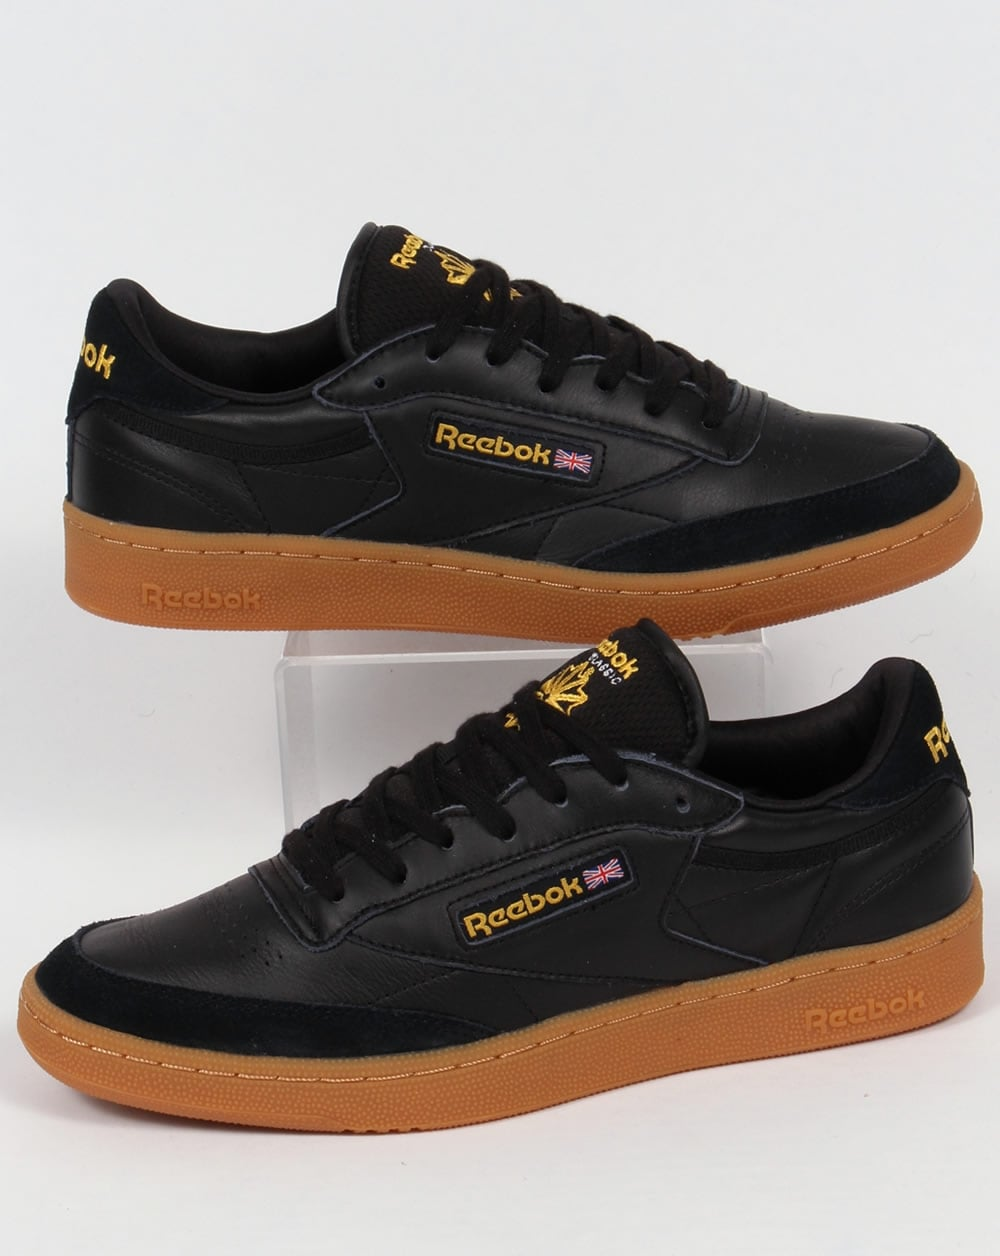 reebok club c 85 trainers black yellow shoe gum leather mens. Black Bedroom Furniture Sets. Home Design Ideas